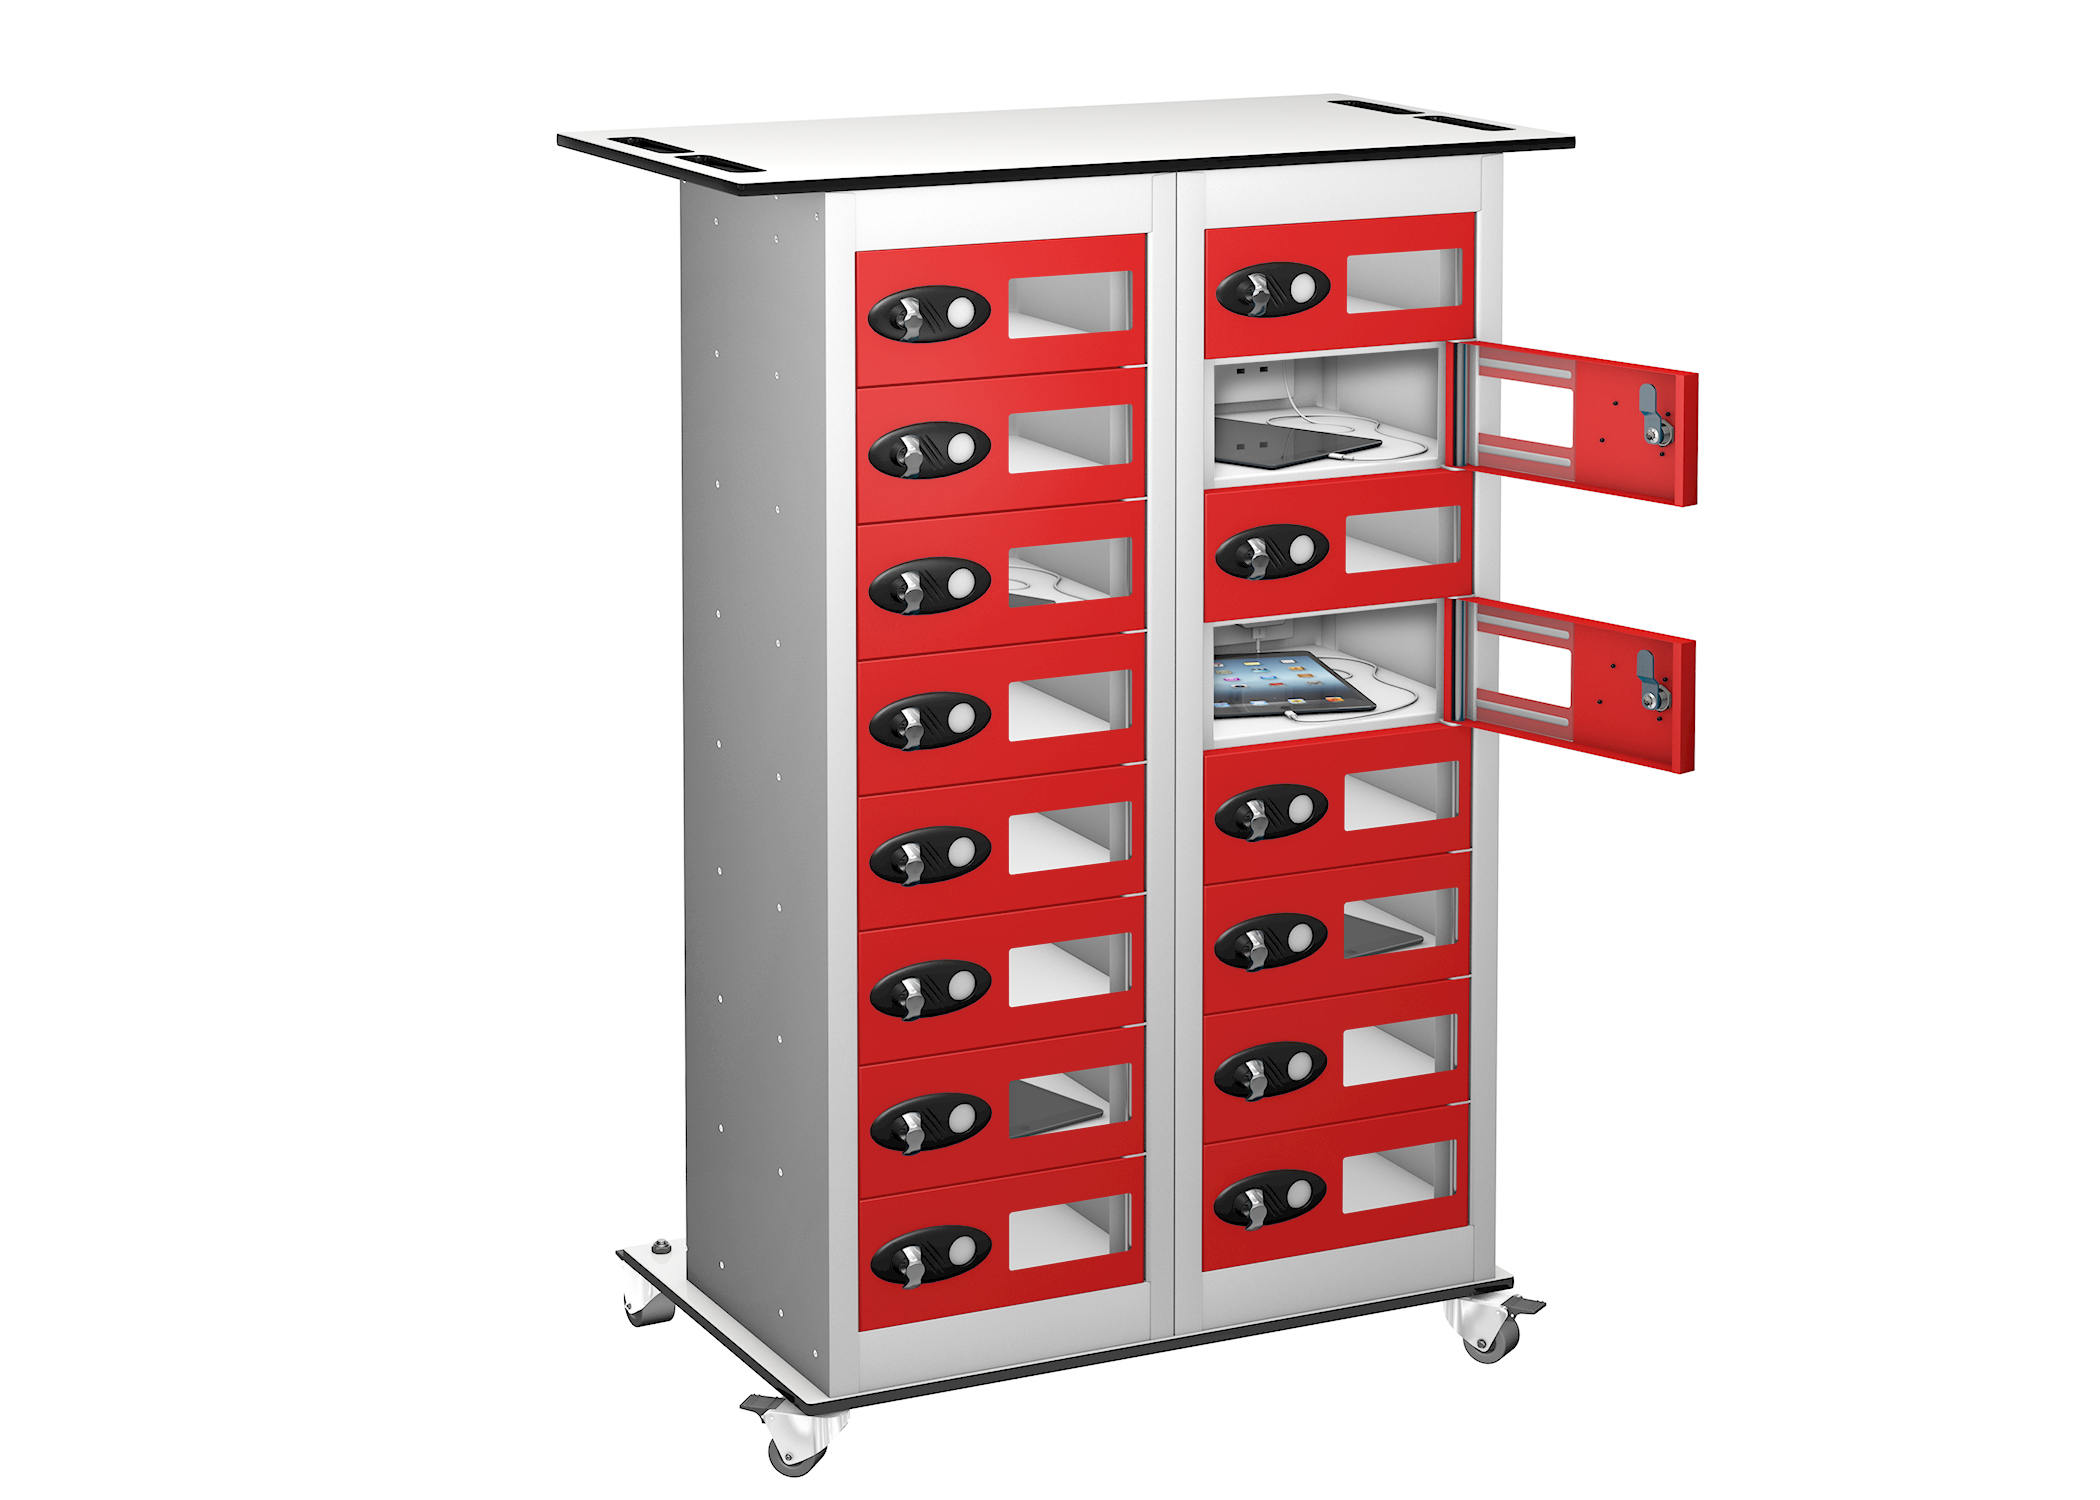 Trolley - VISION PANEL Tablet Storage Locker -16 Compartments - 16 doors (Non Charging)